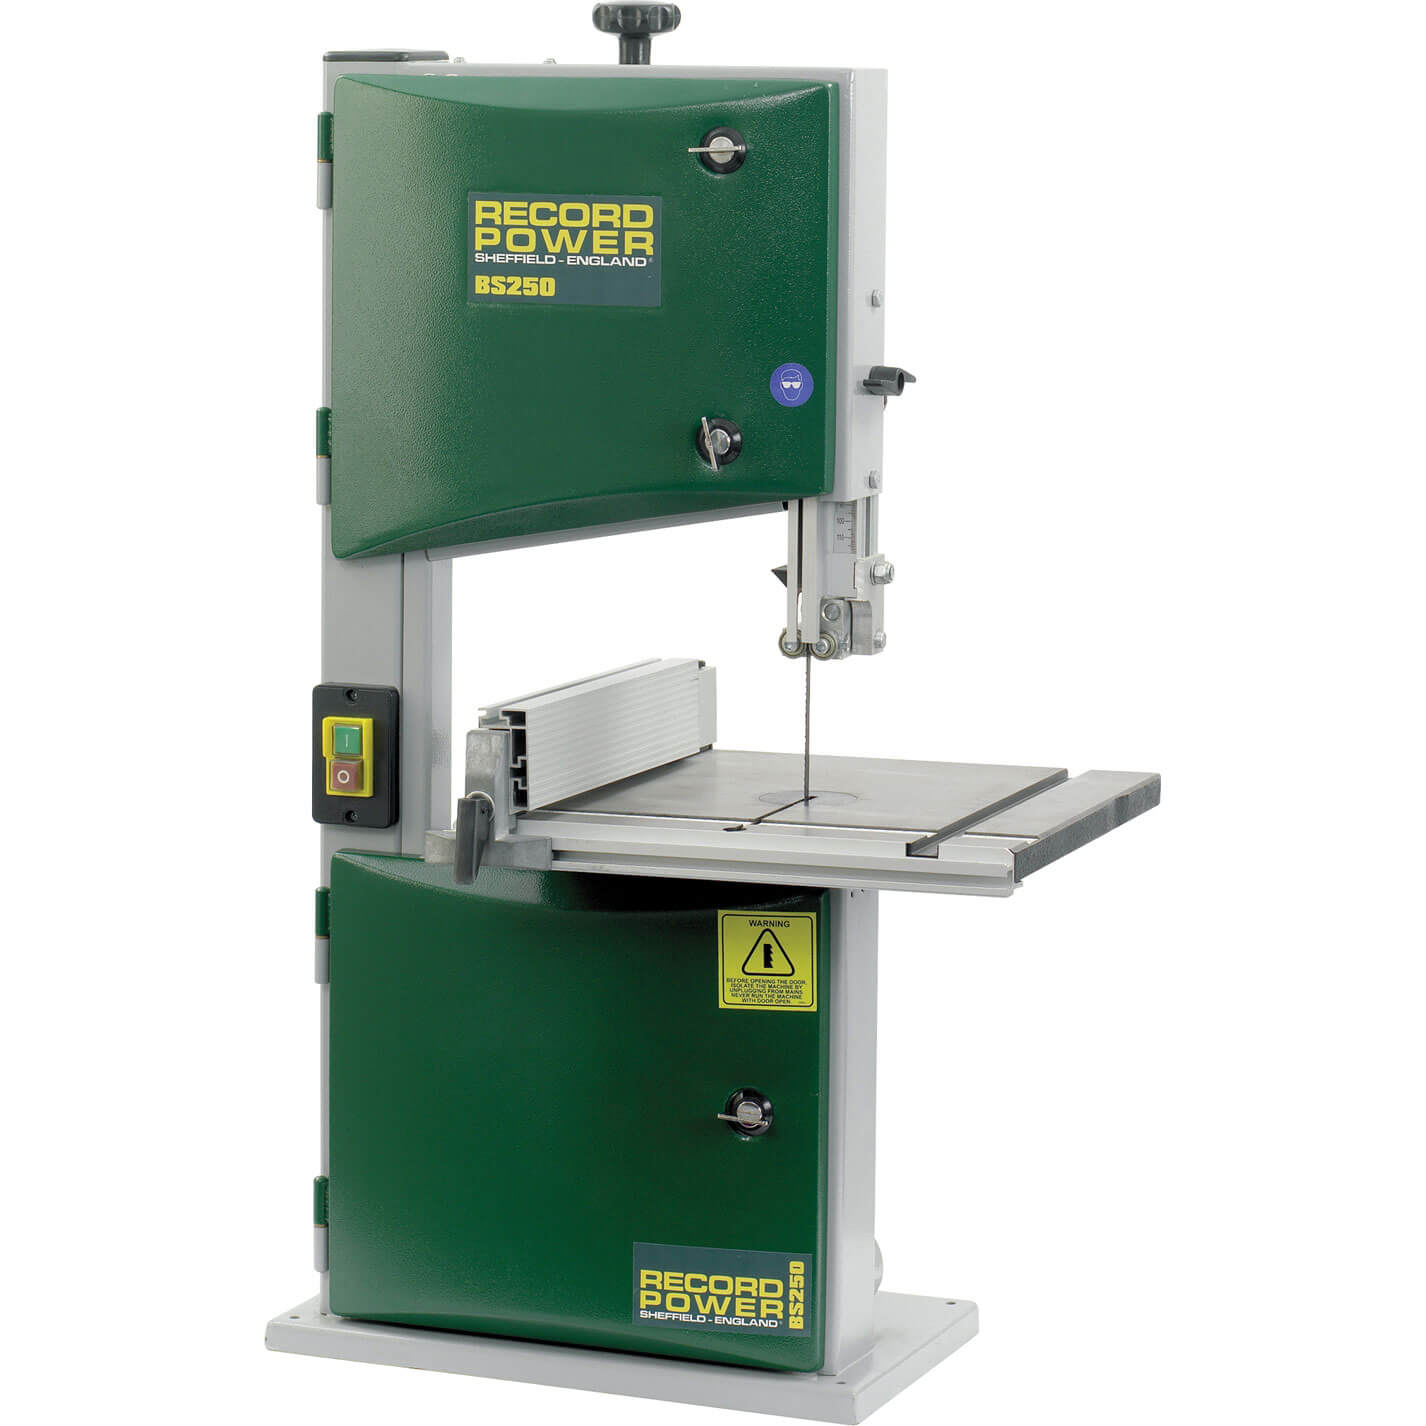 Image of Record Power BS250 Compact Bandsaw 240v